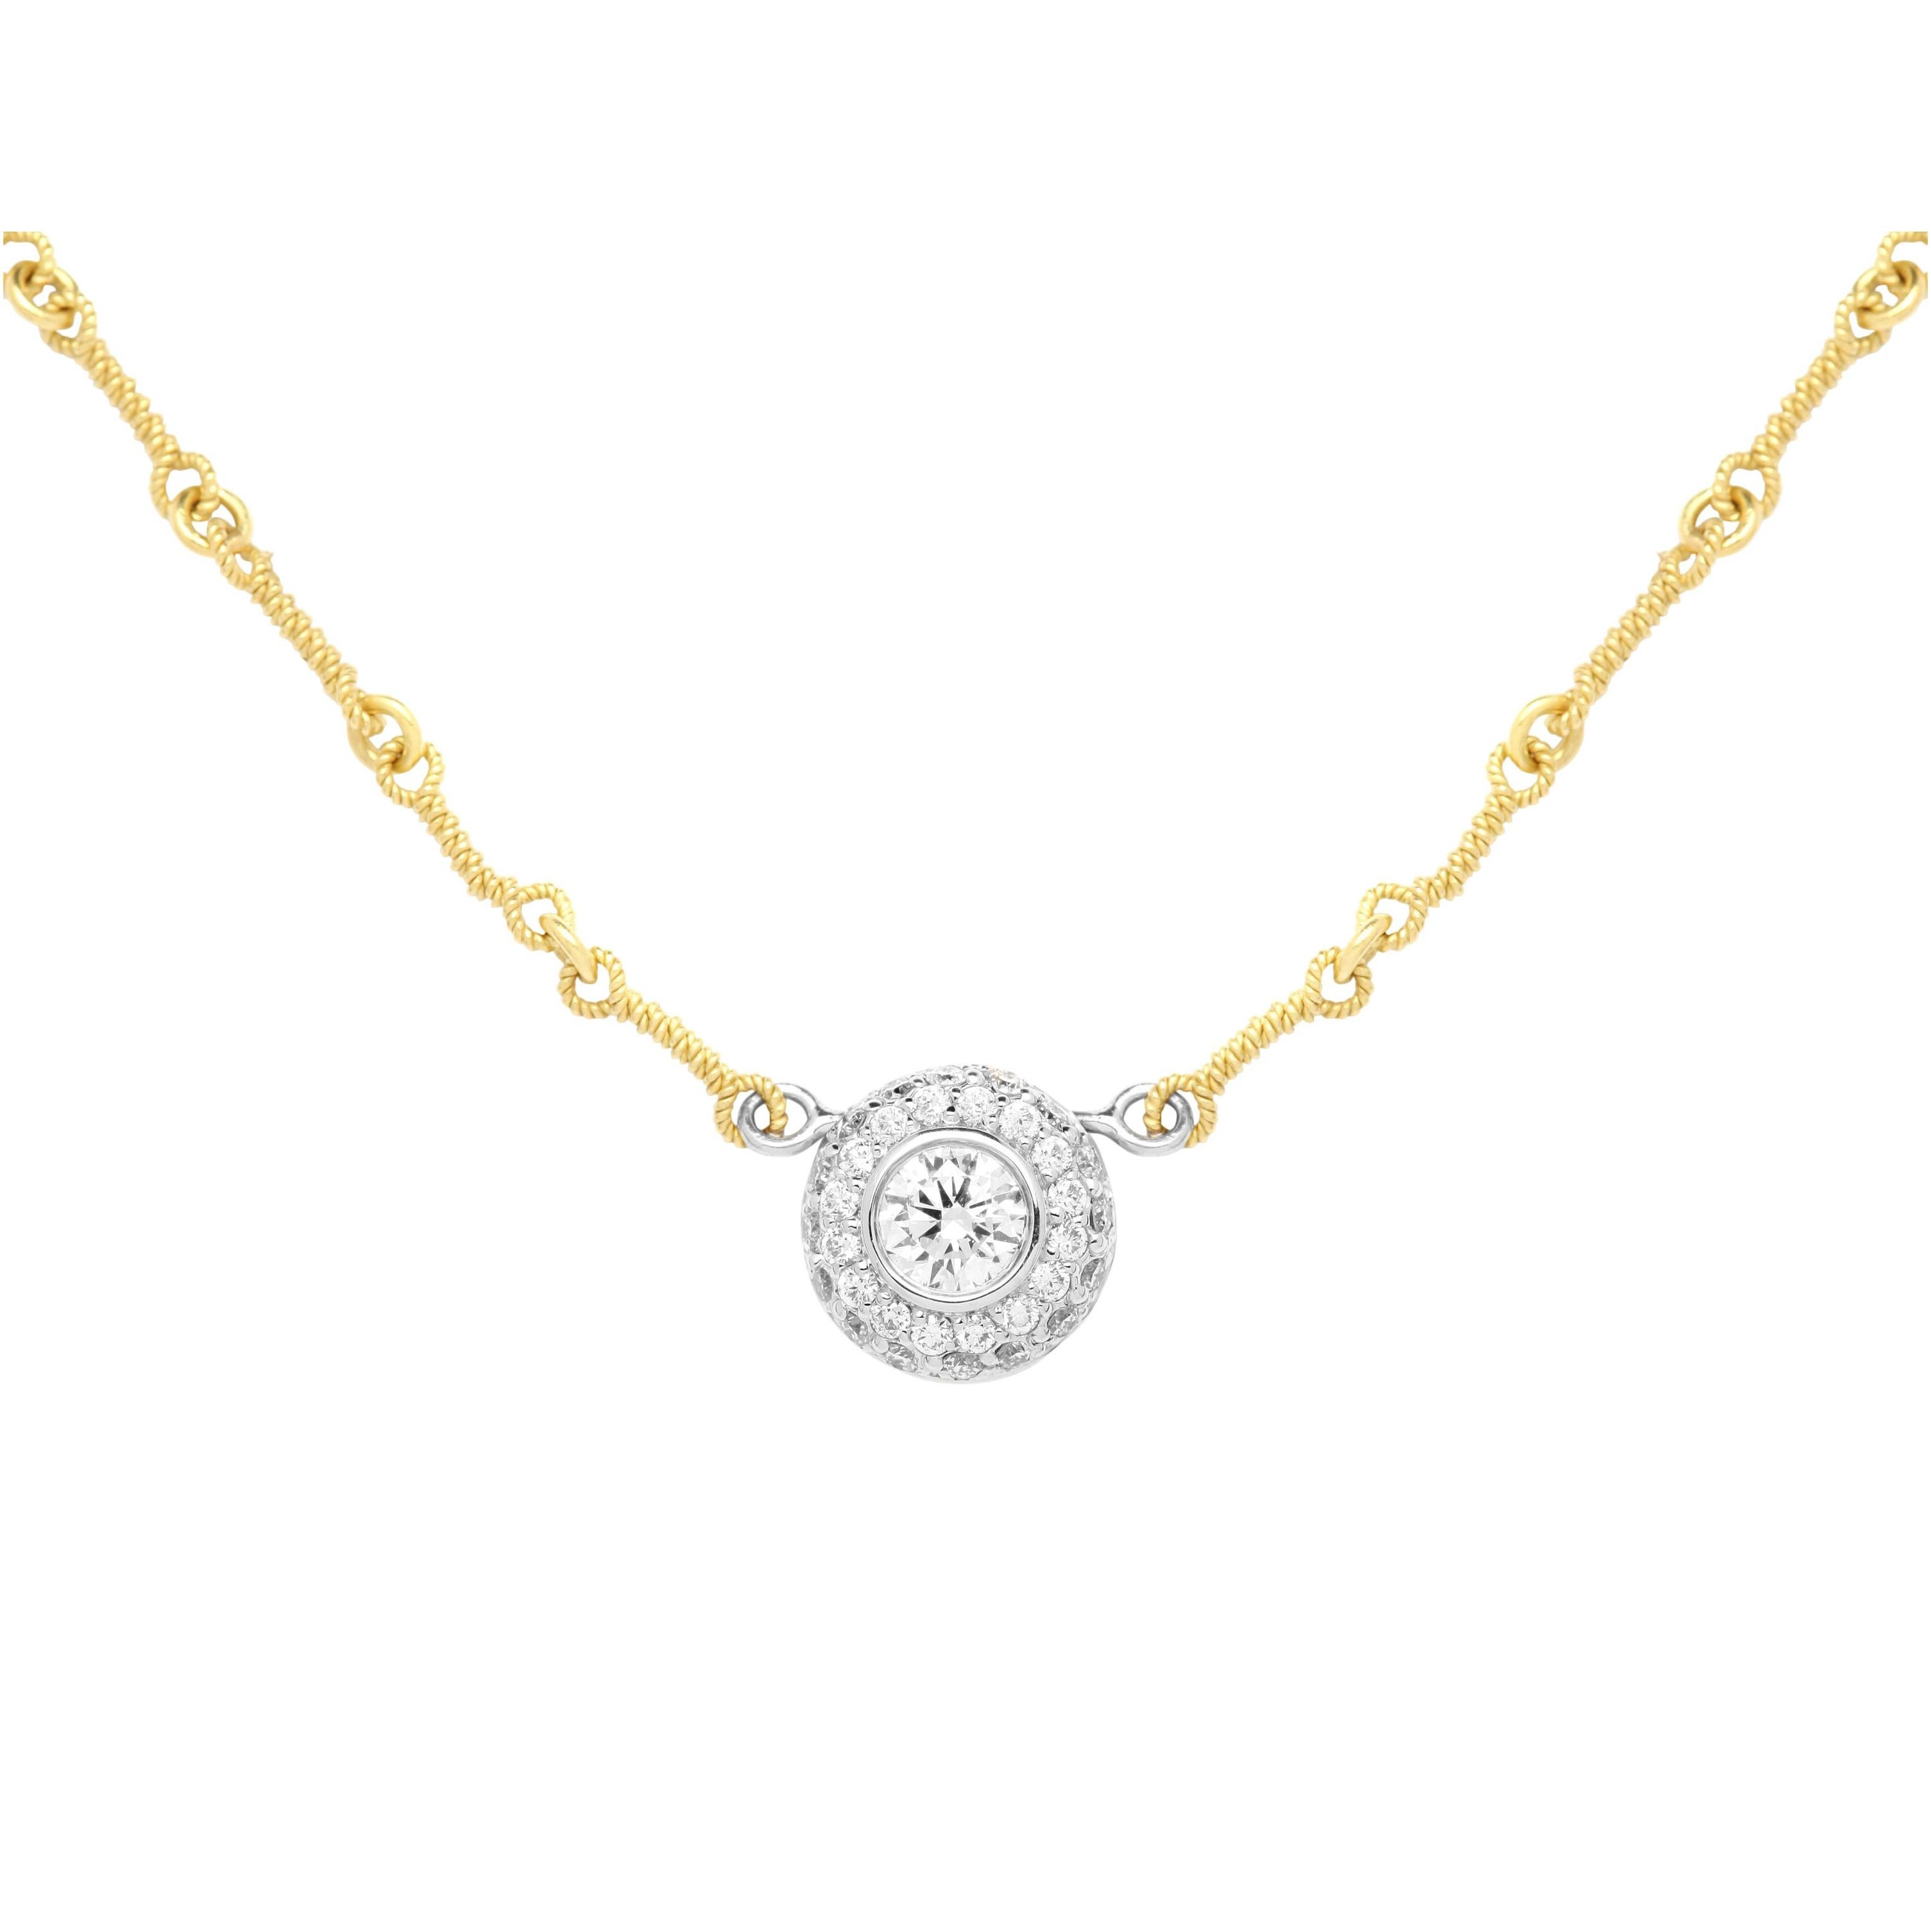 Stambolian Yellow White Gold and Diamond Round Pendant with Chain Necklace